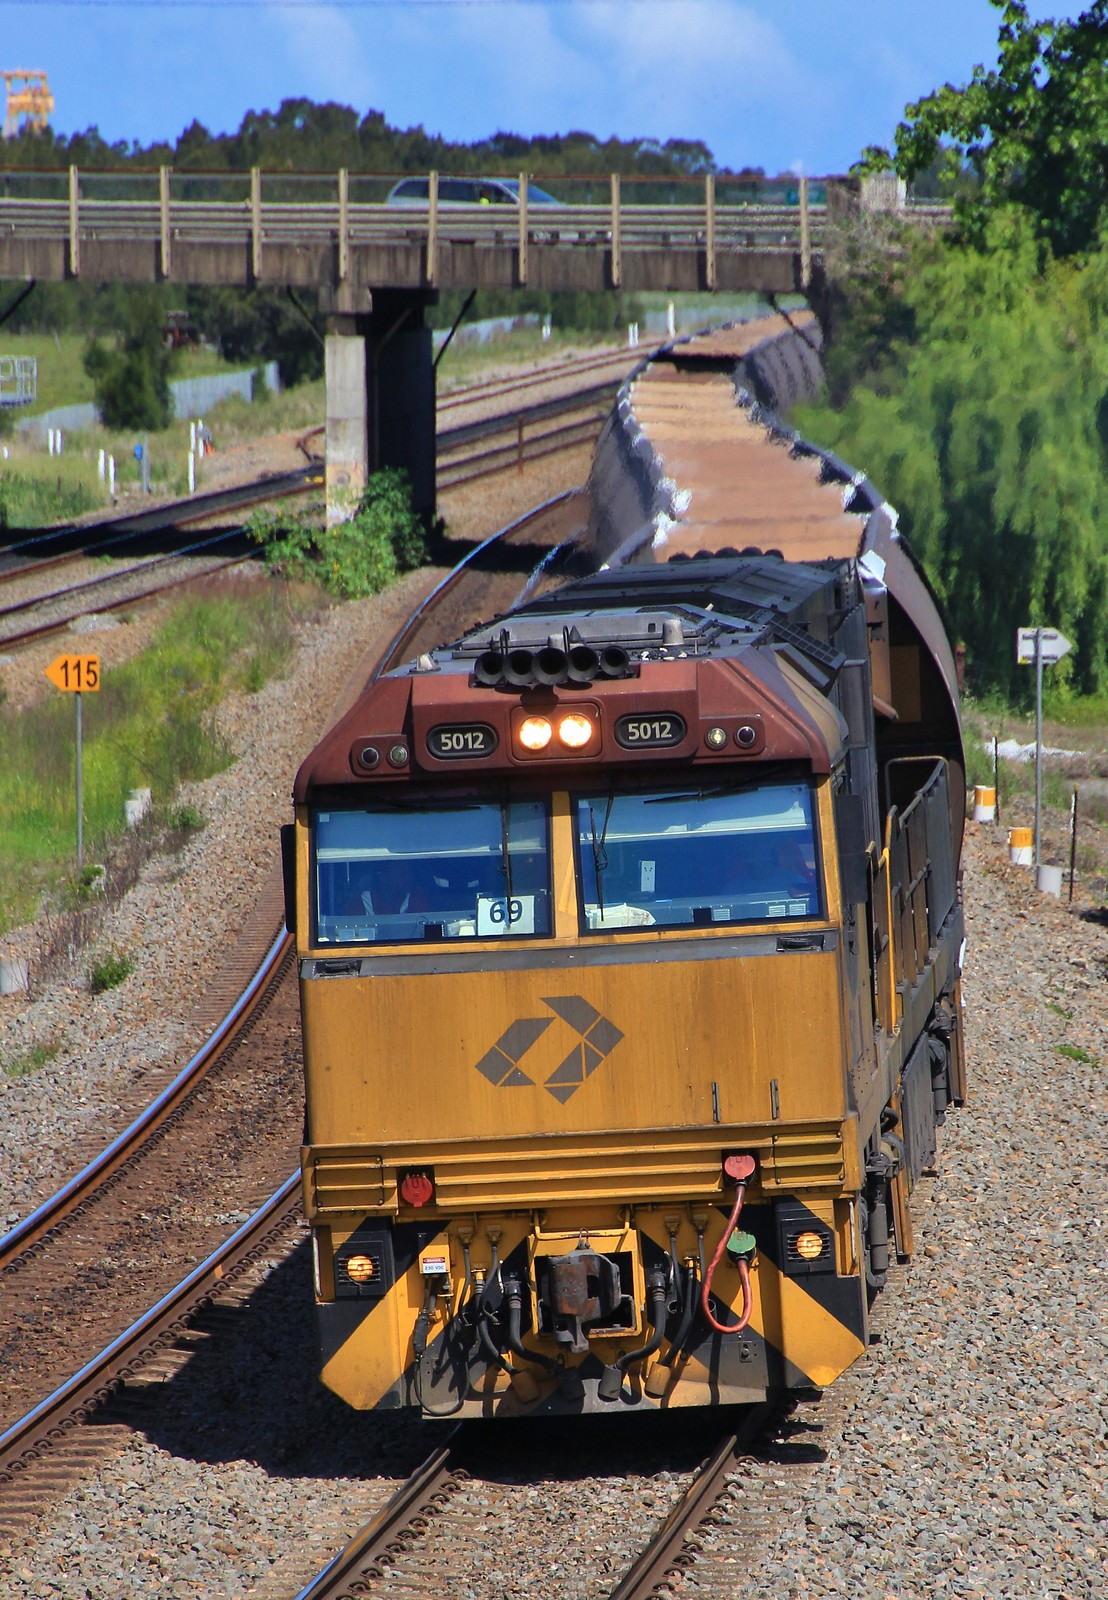 5012 leads MR953 empty coal train through Tarro to Moolarben by bukk05